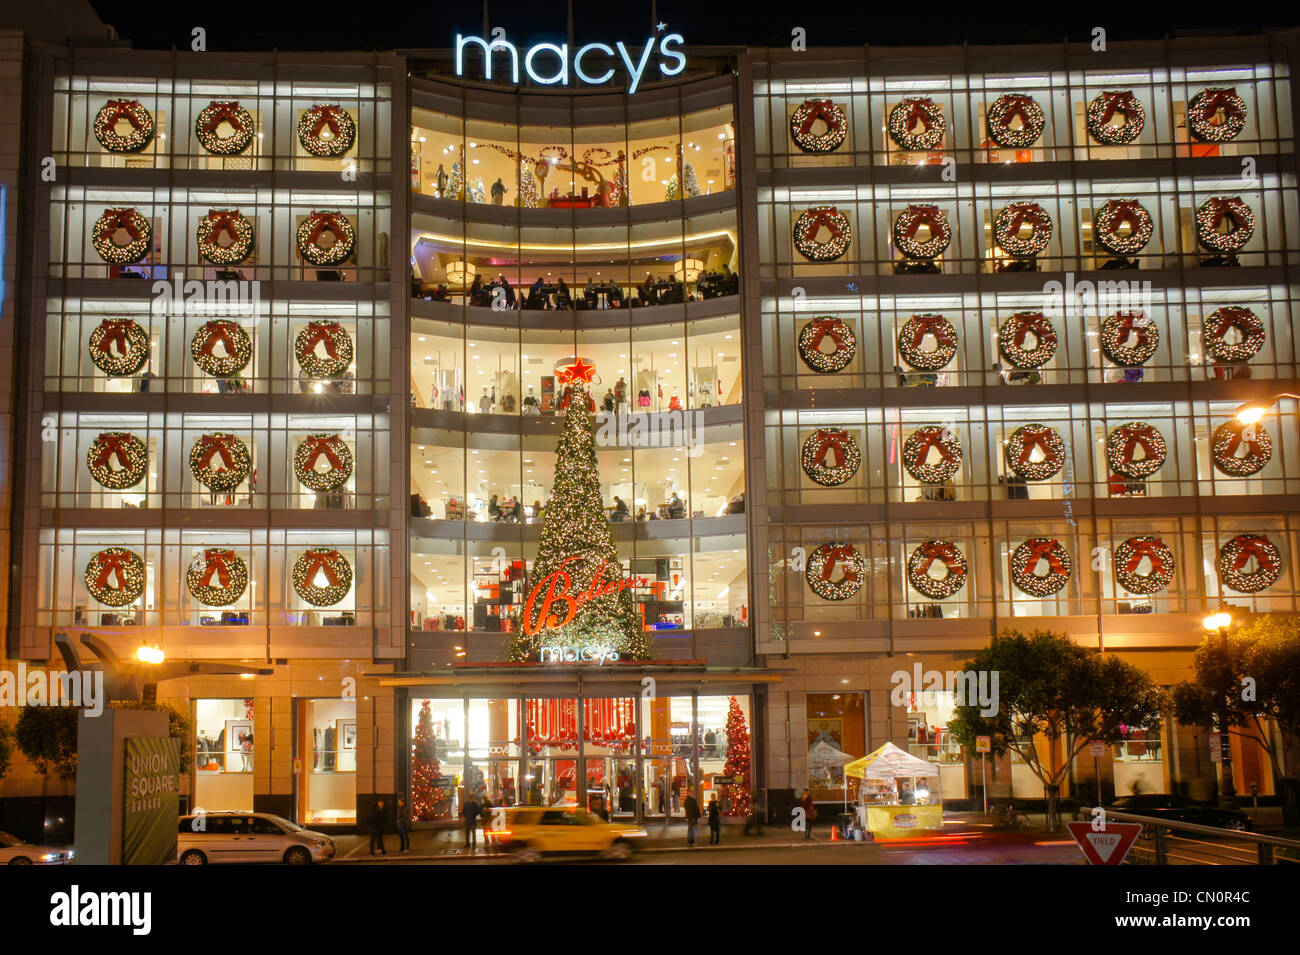 macys department store christmas decorations san francisco california usa stock image